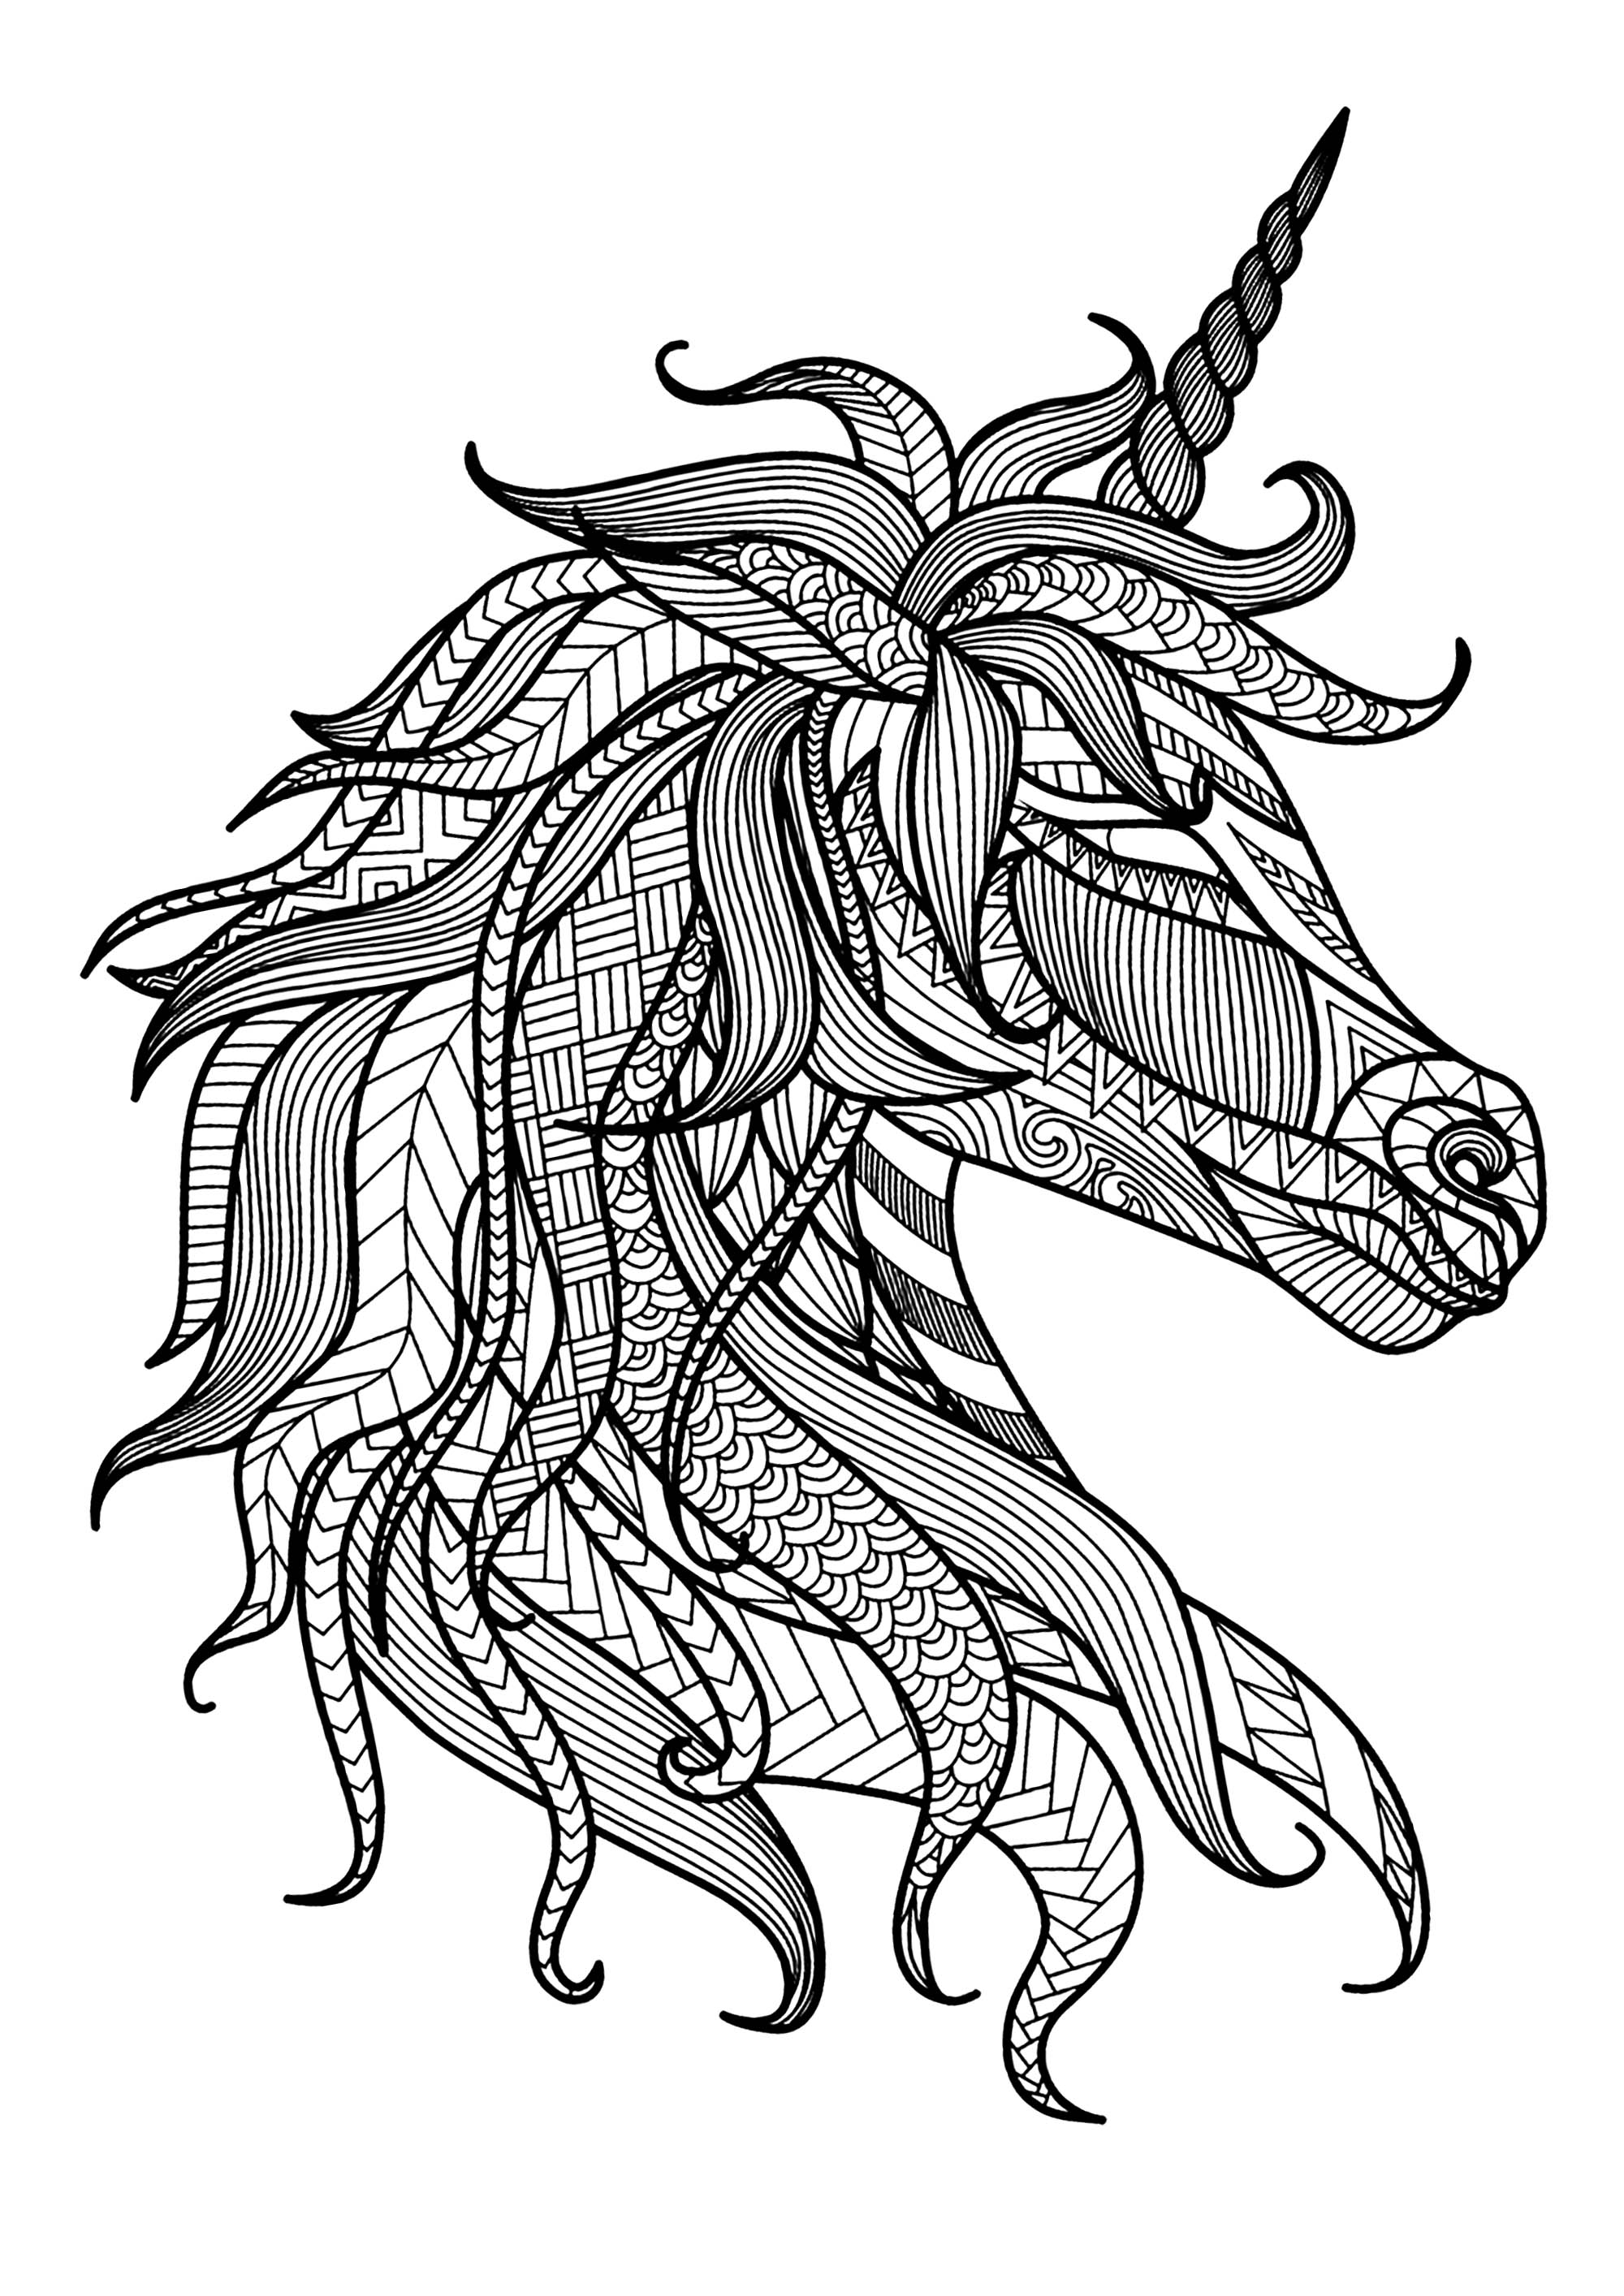 coloring sheet unicorn coloring pictures to print printable coloring pages unicorn coloring home to sheet coloring print pictures coloring unicorn